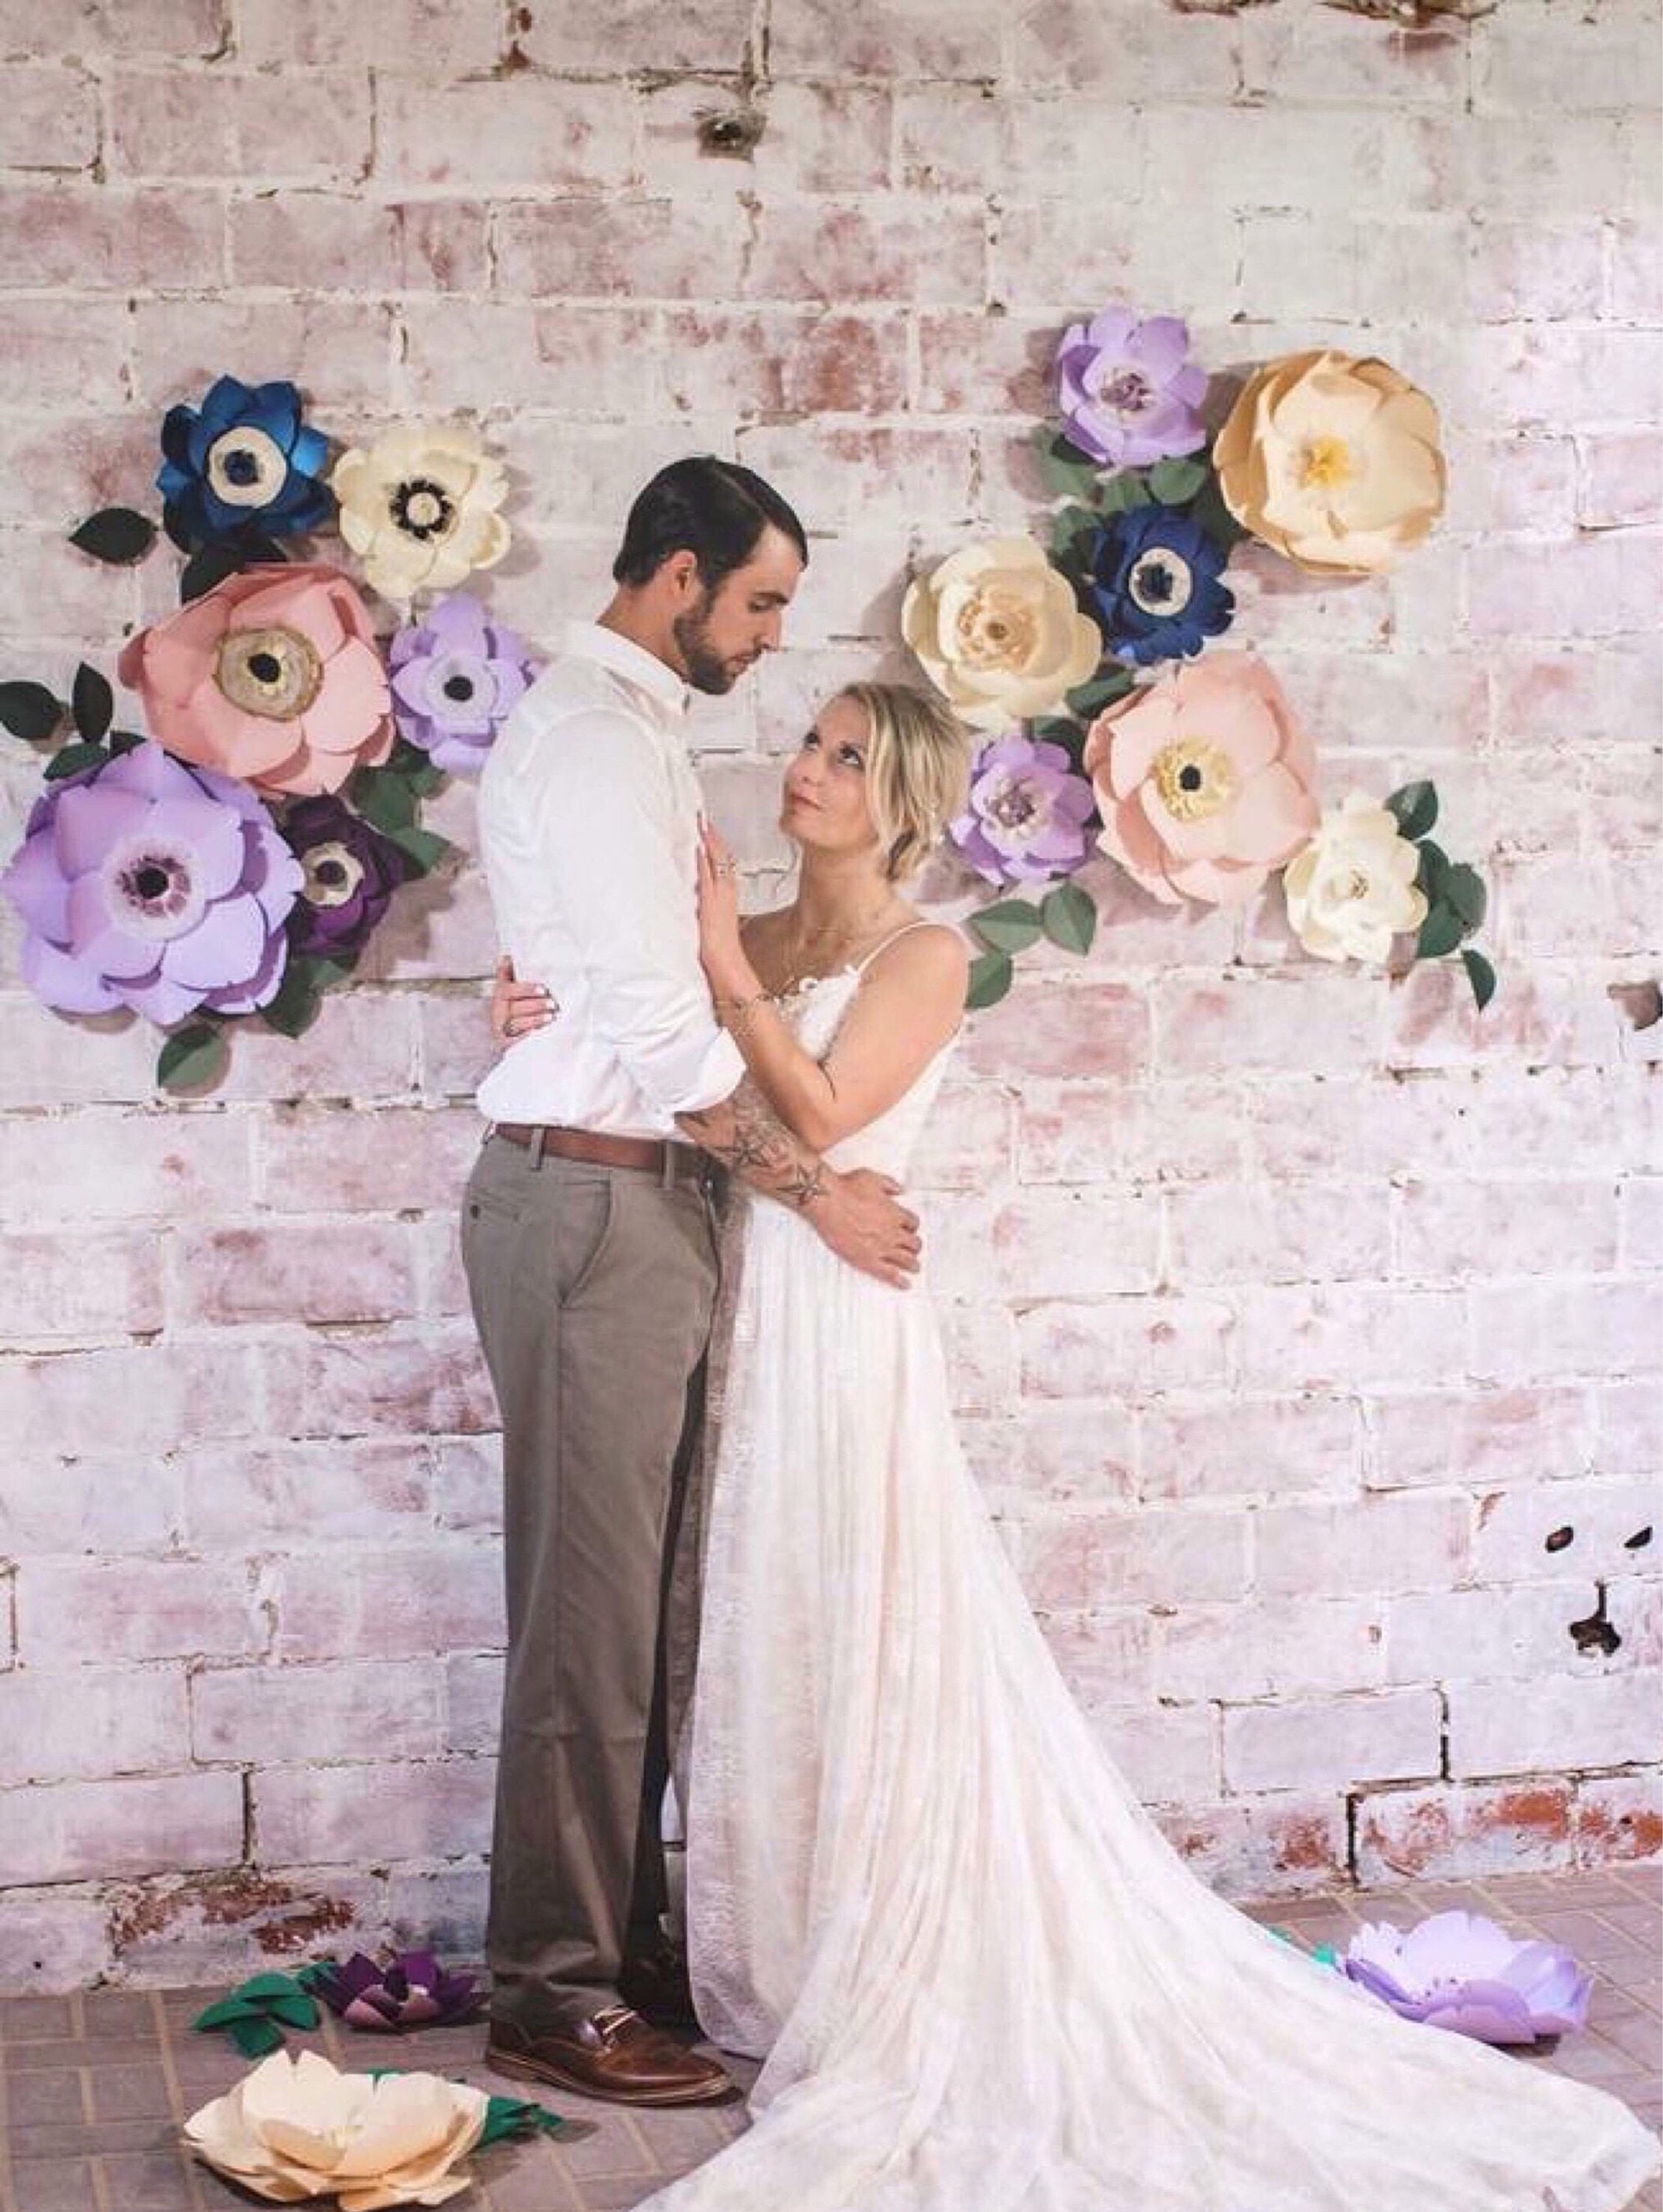 Giant Large Paper Flower Wall Backdrop Decor Wedding Photoshoot Props Stage Baby Girl Nursery Bedroom Accent